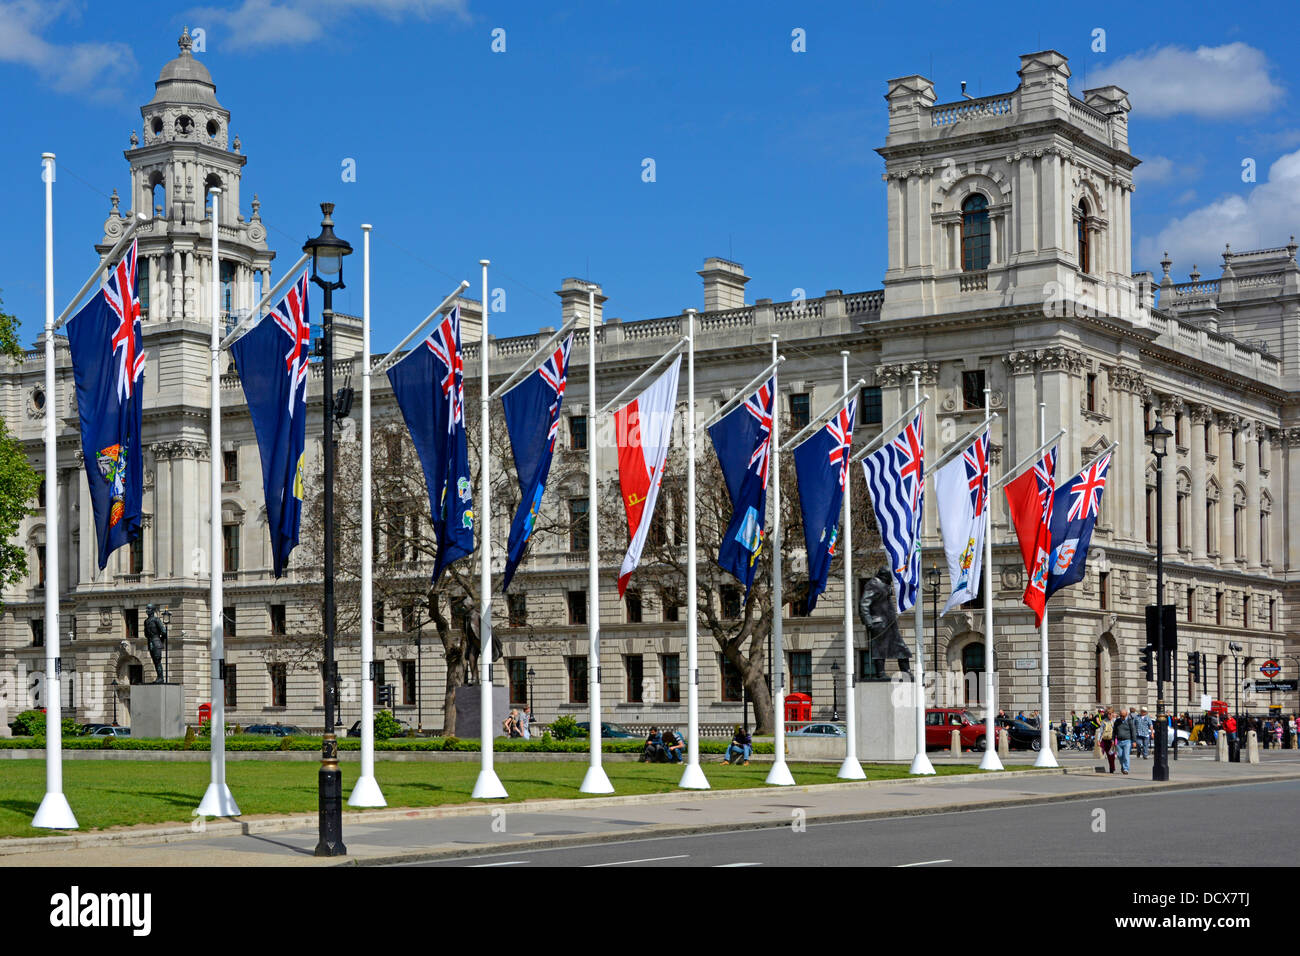 Flags in Parliament Square with Government Offices beyond - Stock Image